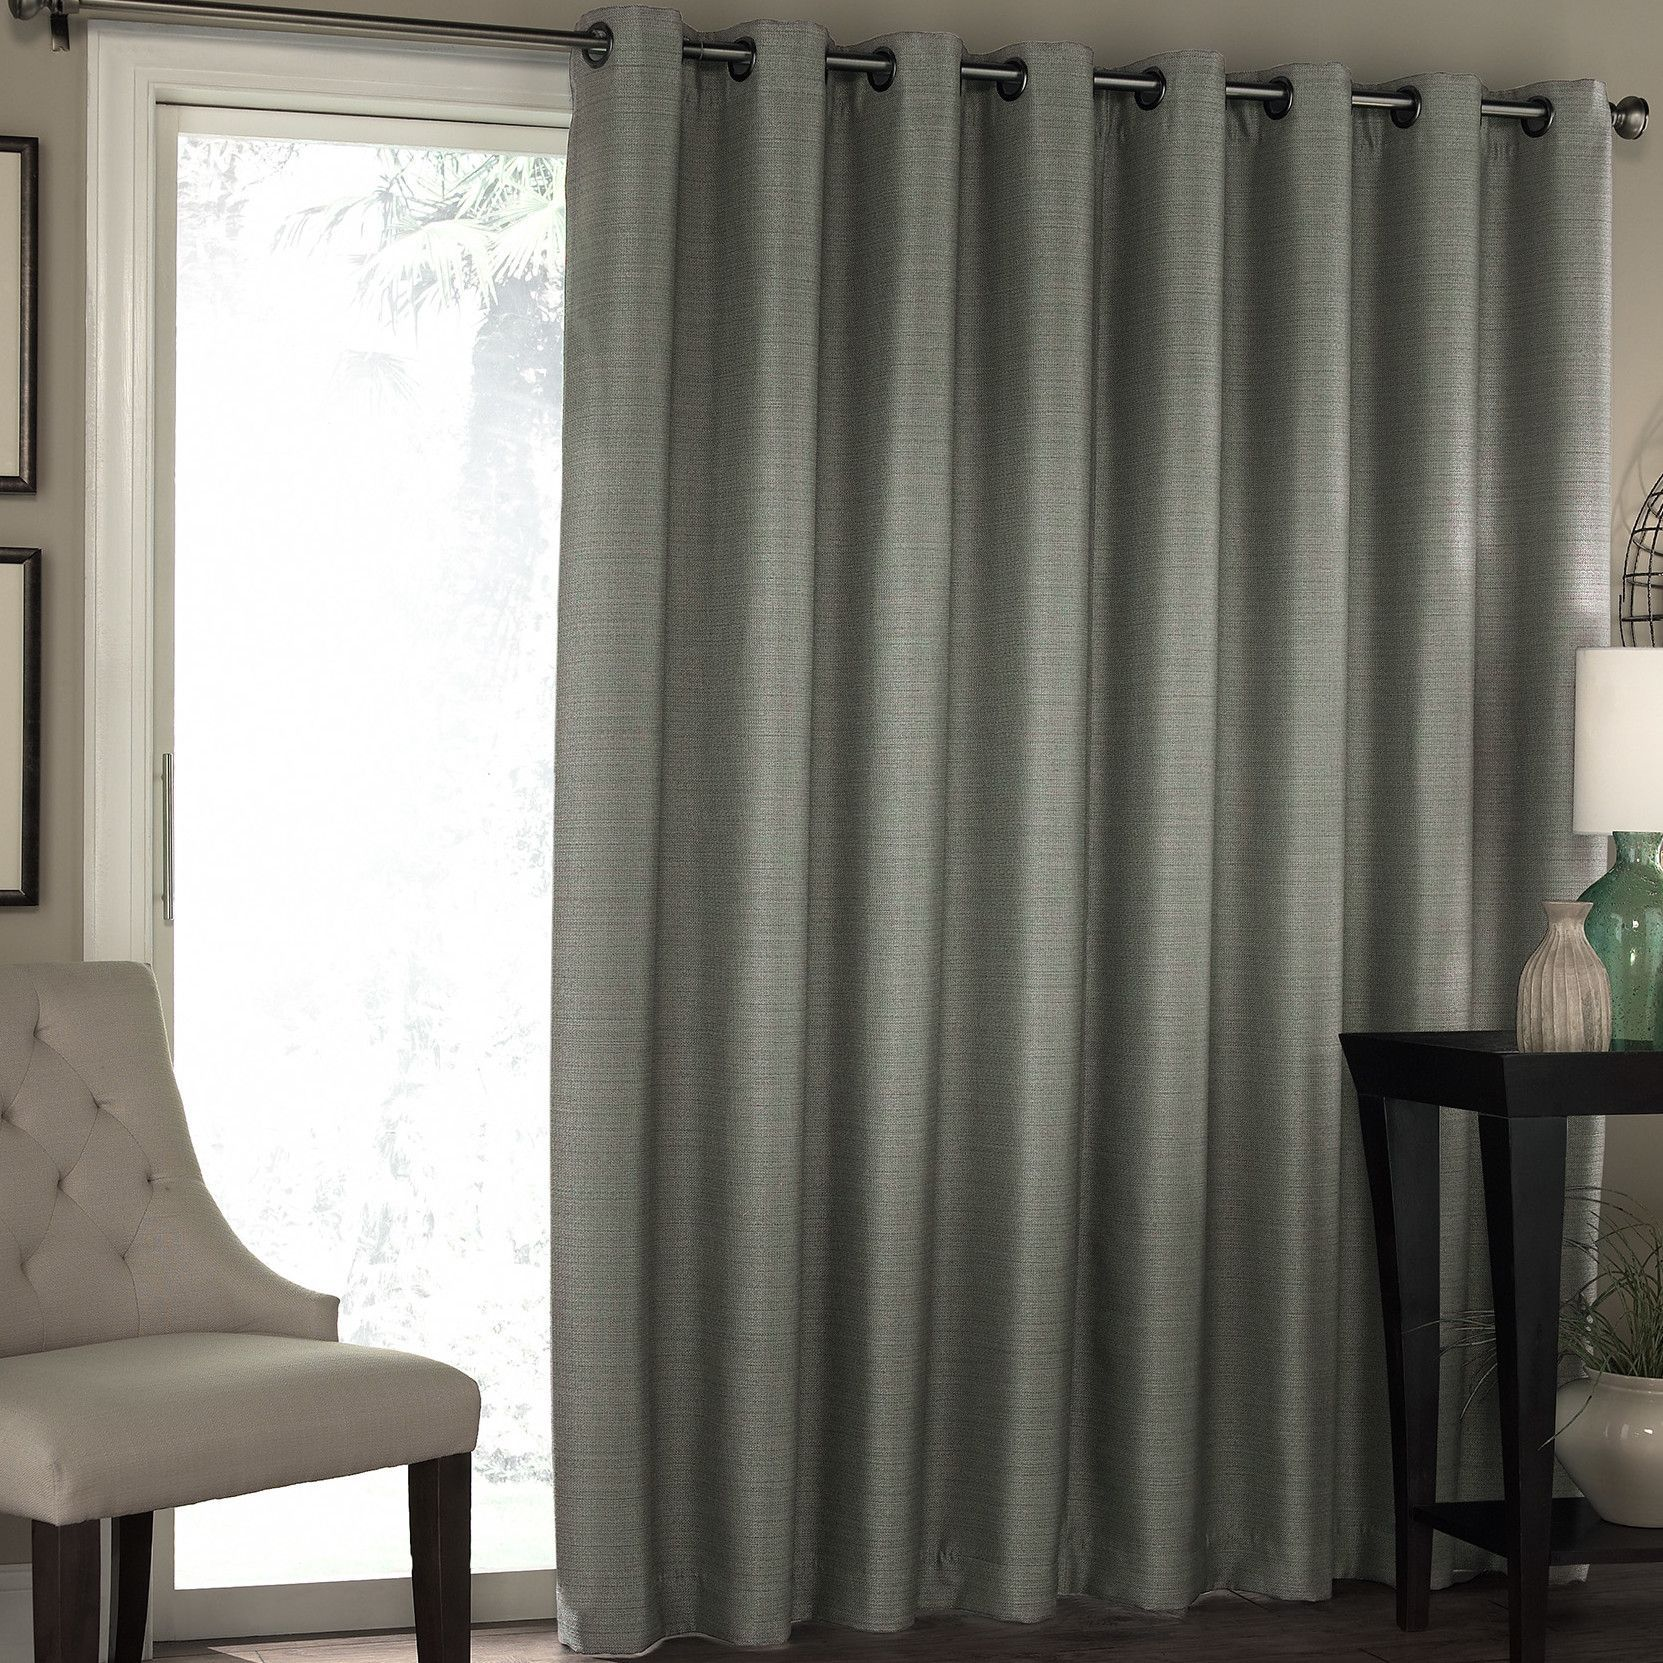 Window coverings to block sun  features bryson collection the fashionable alternative to